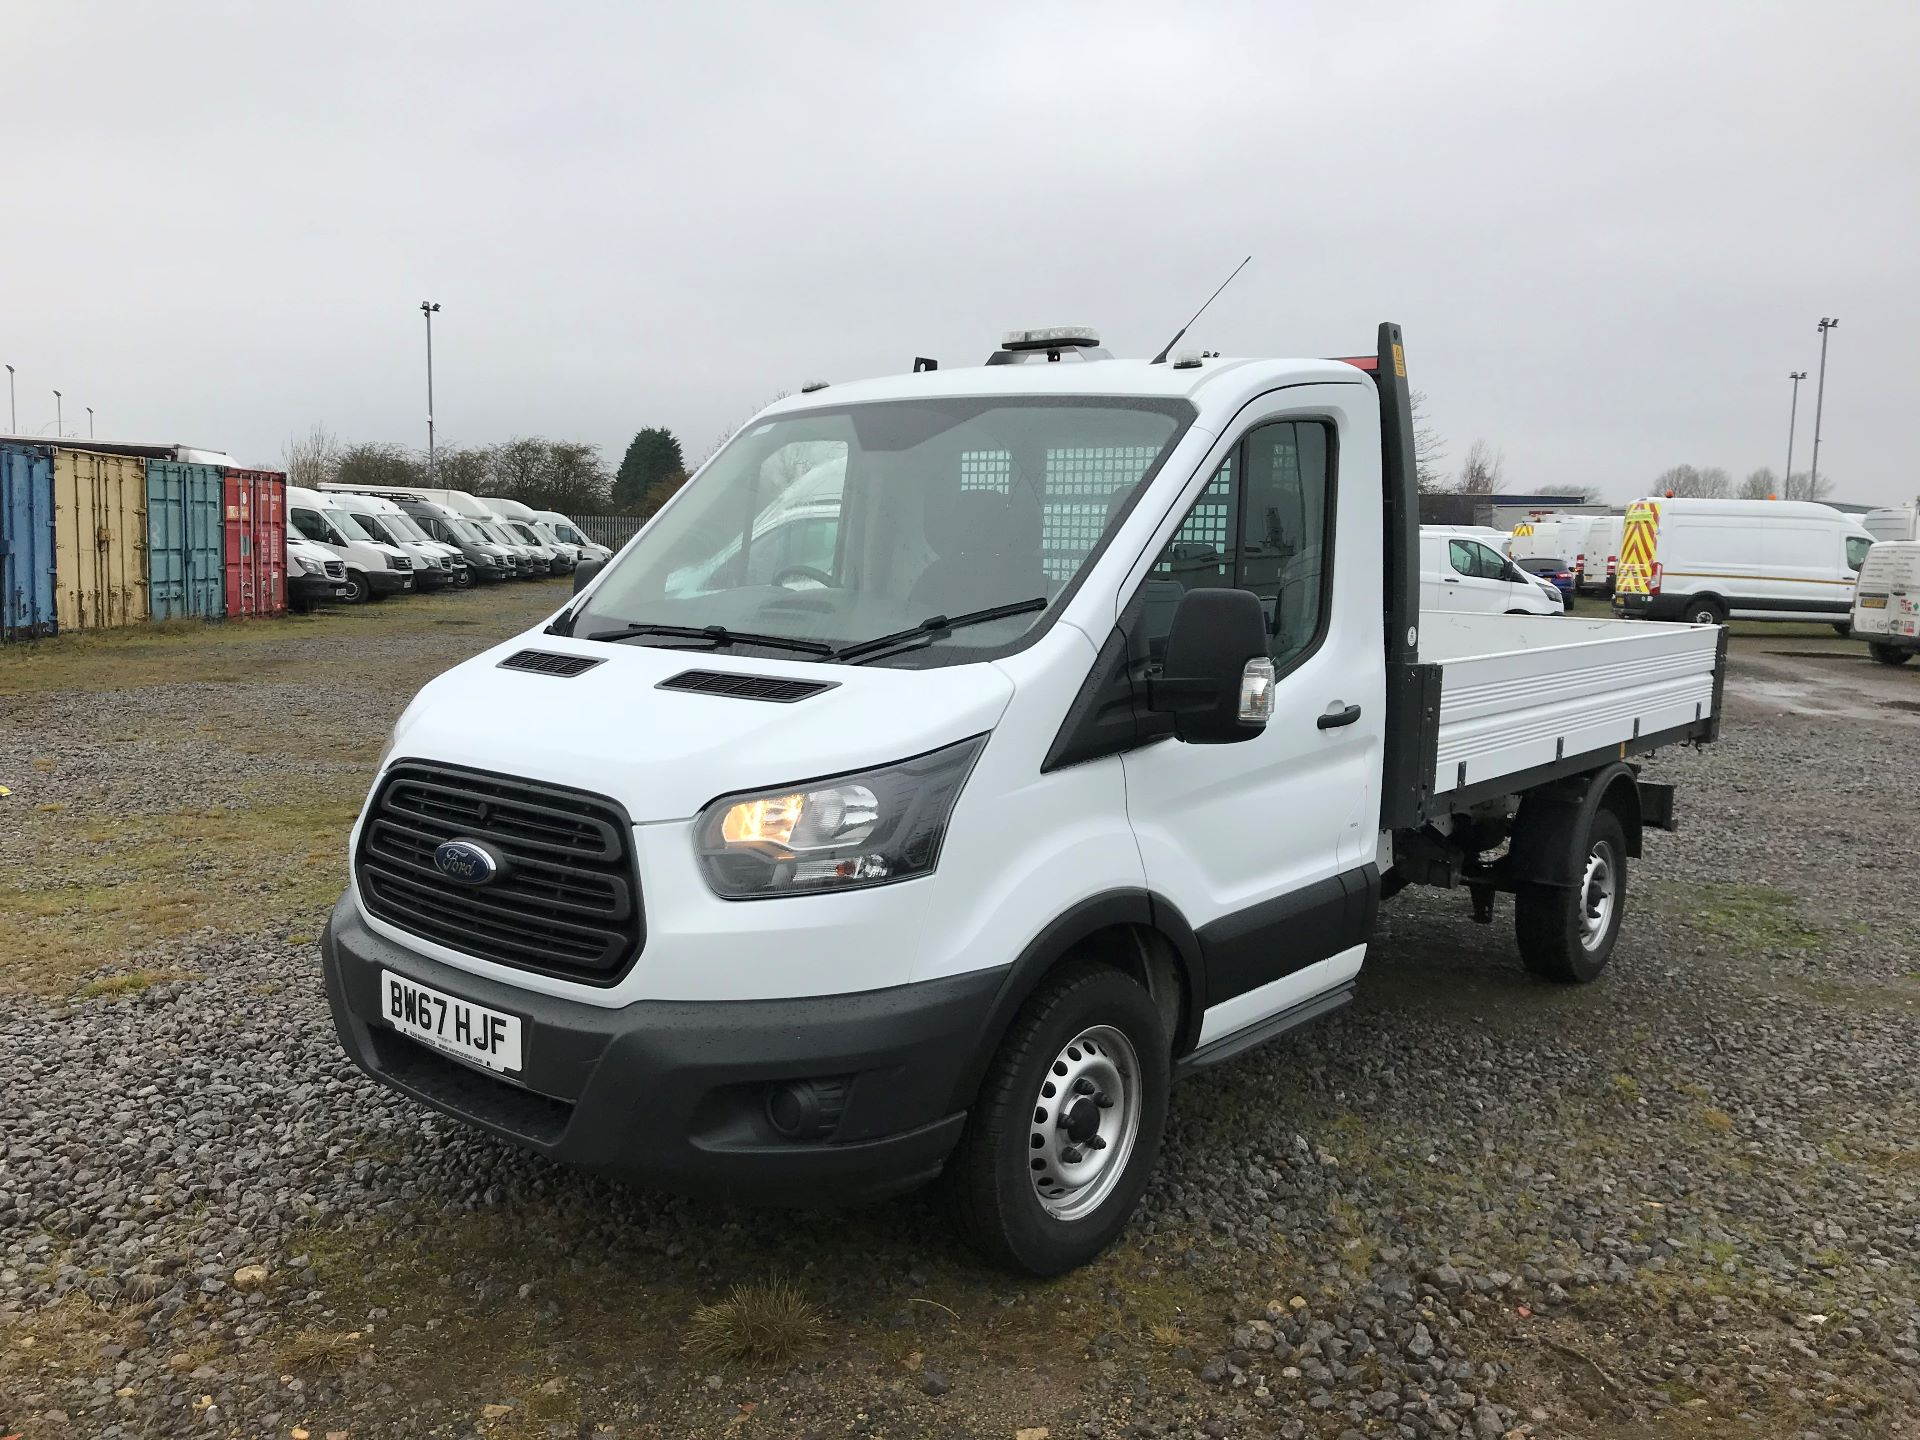 2018 Ford Transit 2.0 Tdci 130Ps One Stop Tipper (BW67HJF) Image 3